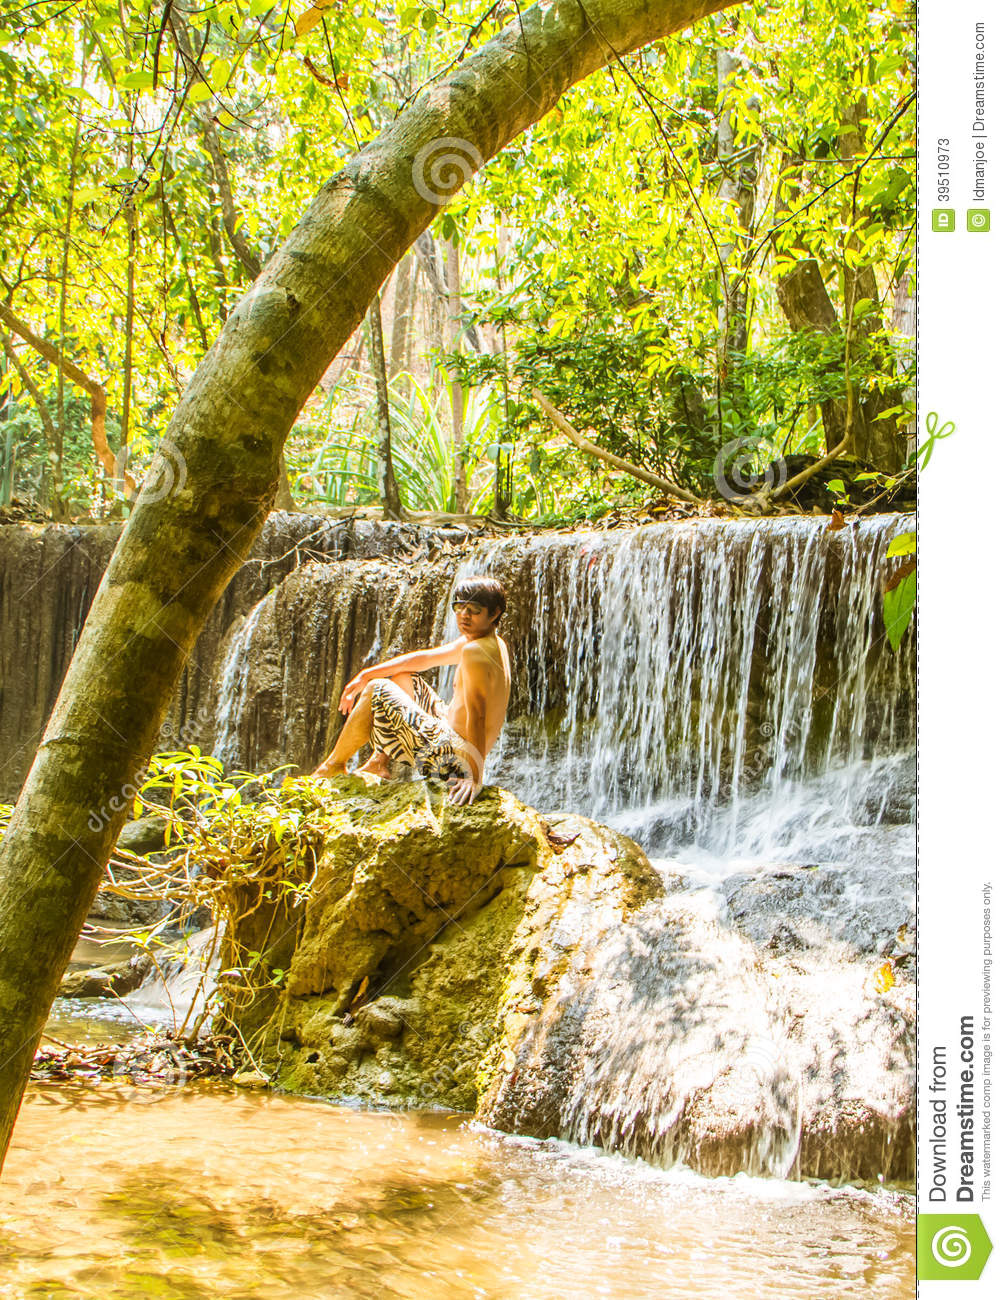 Relaxing at waterfall